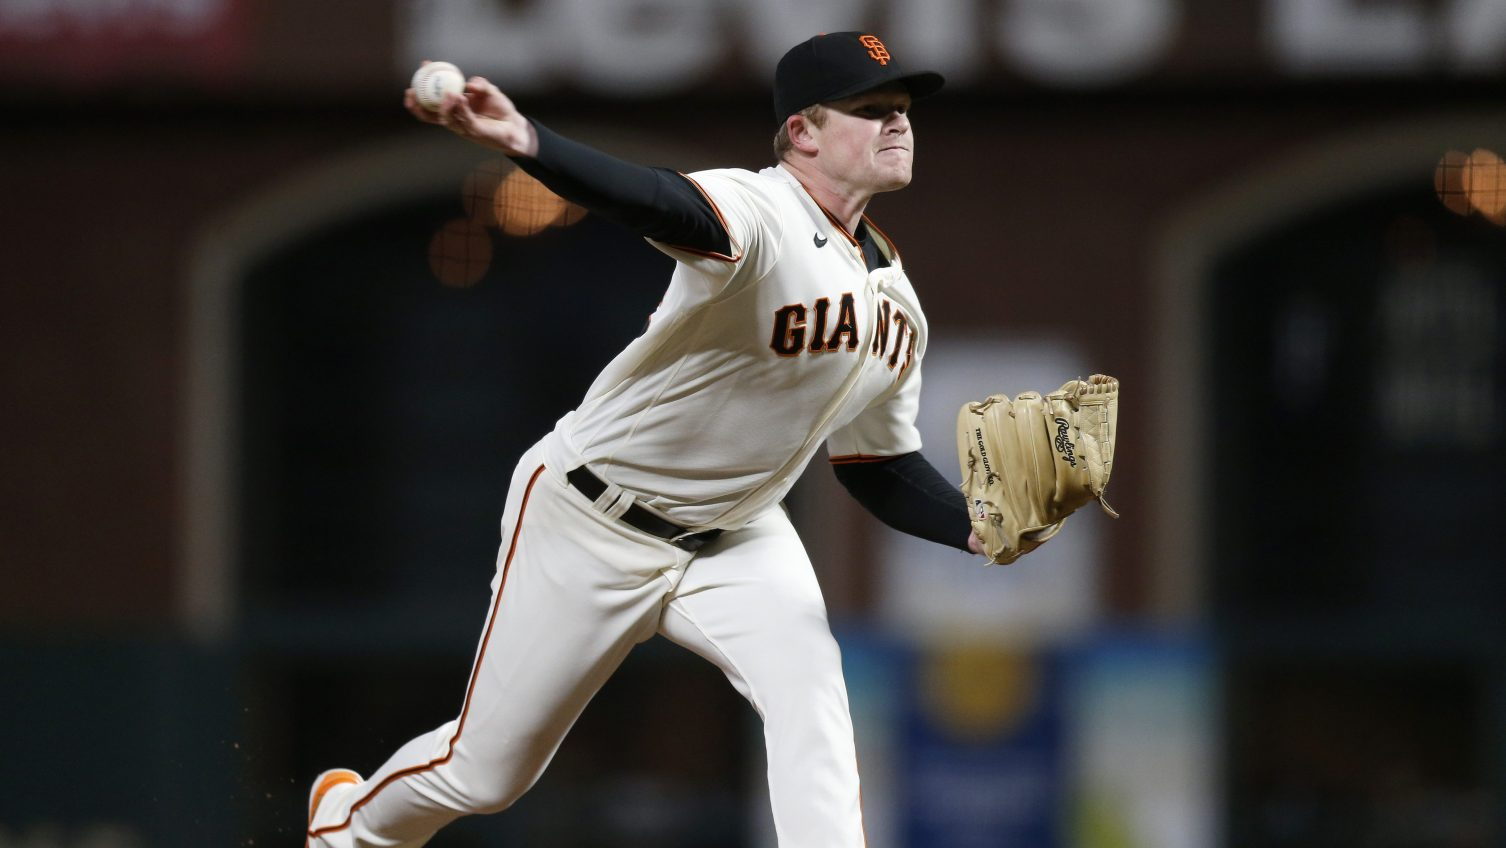 Webb pitches Giants past Dodgers in playoff opener